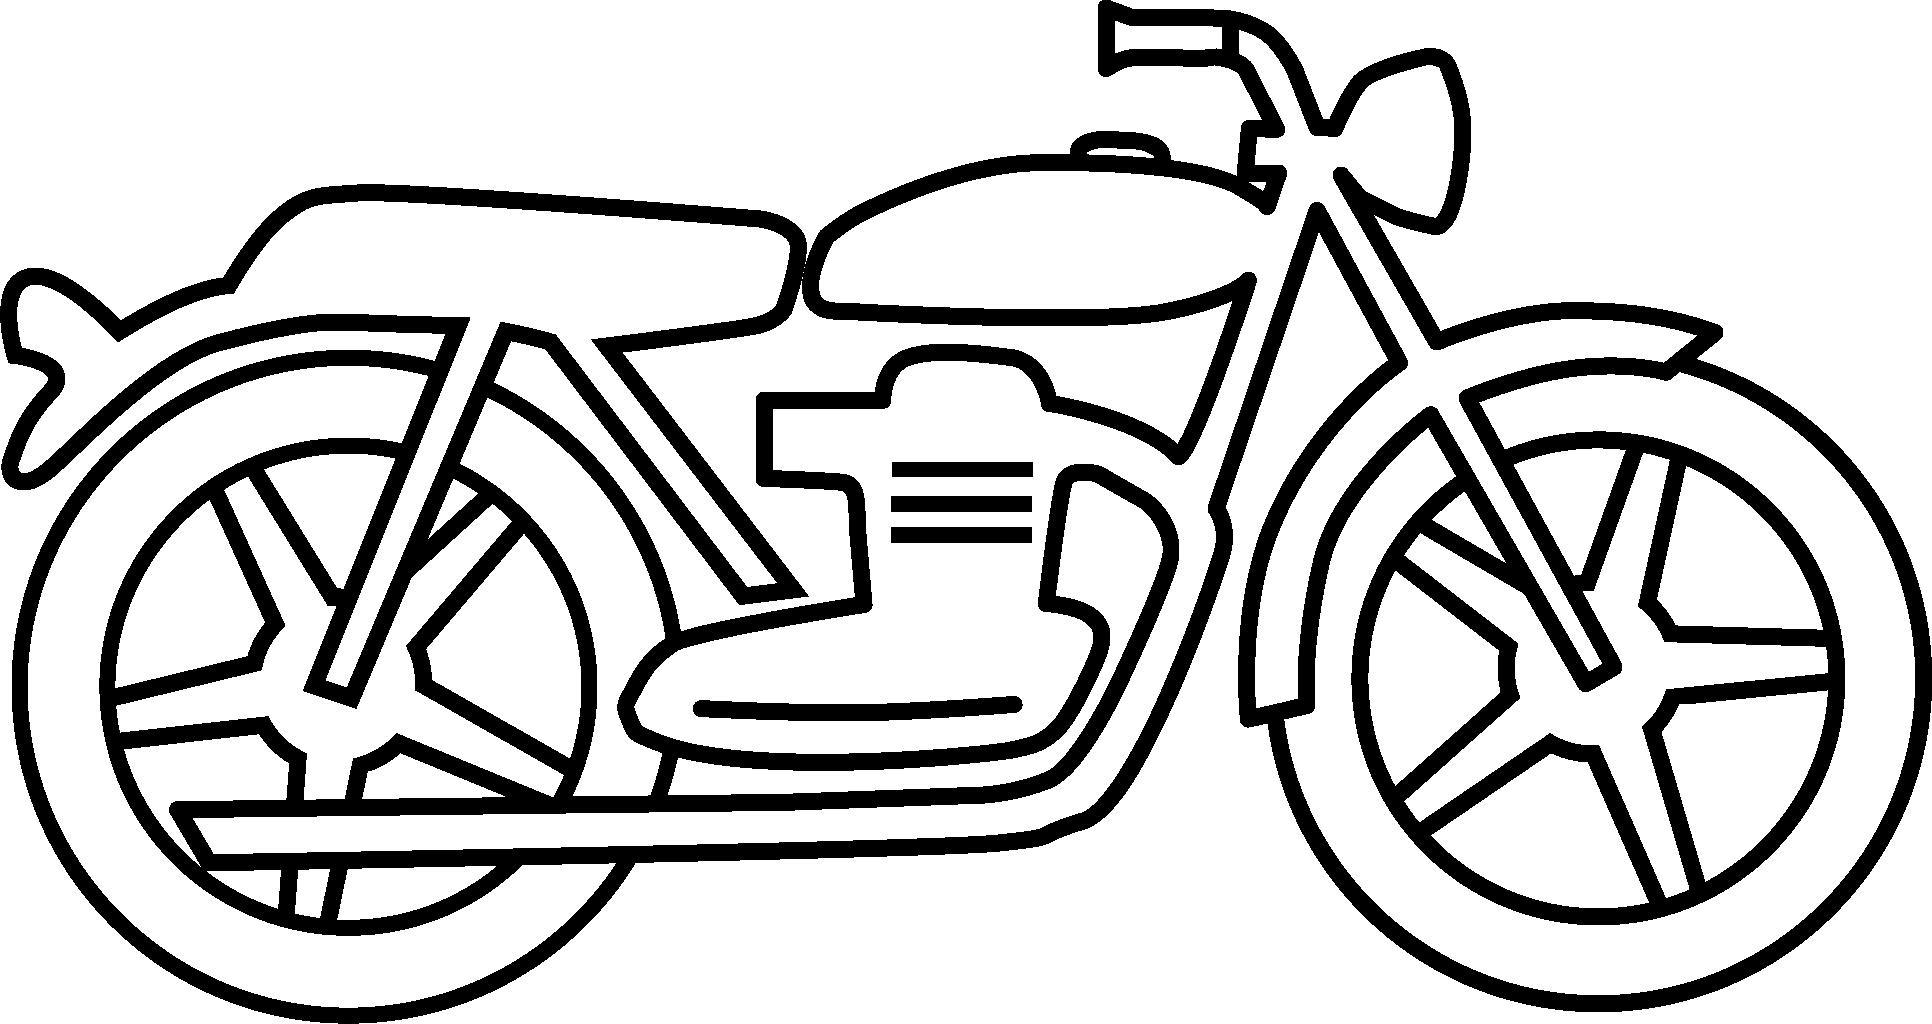 Motorcycle Clipart Black And White Simpl-Motorcycle Clipart Black And White Simple ...-13